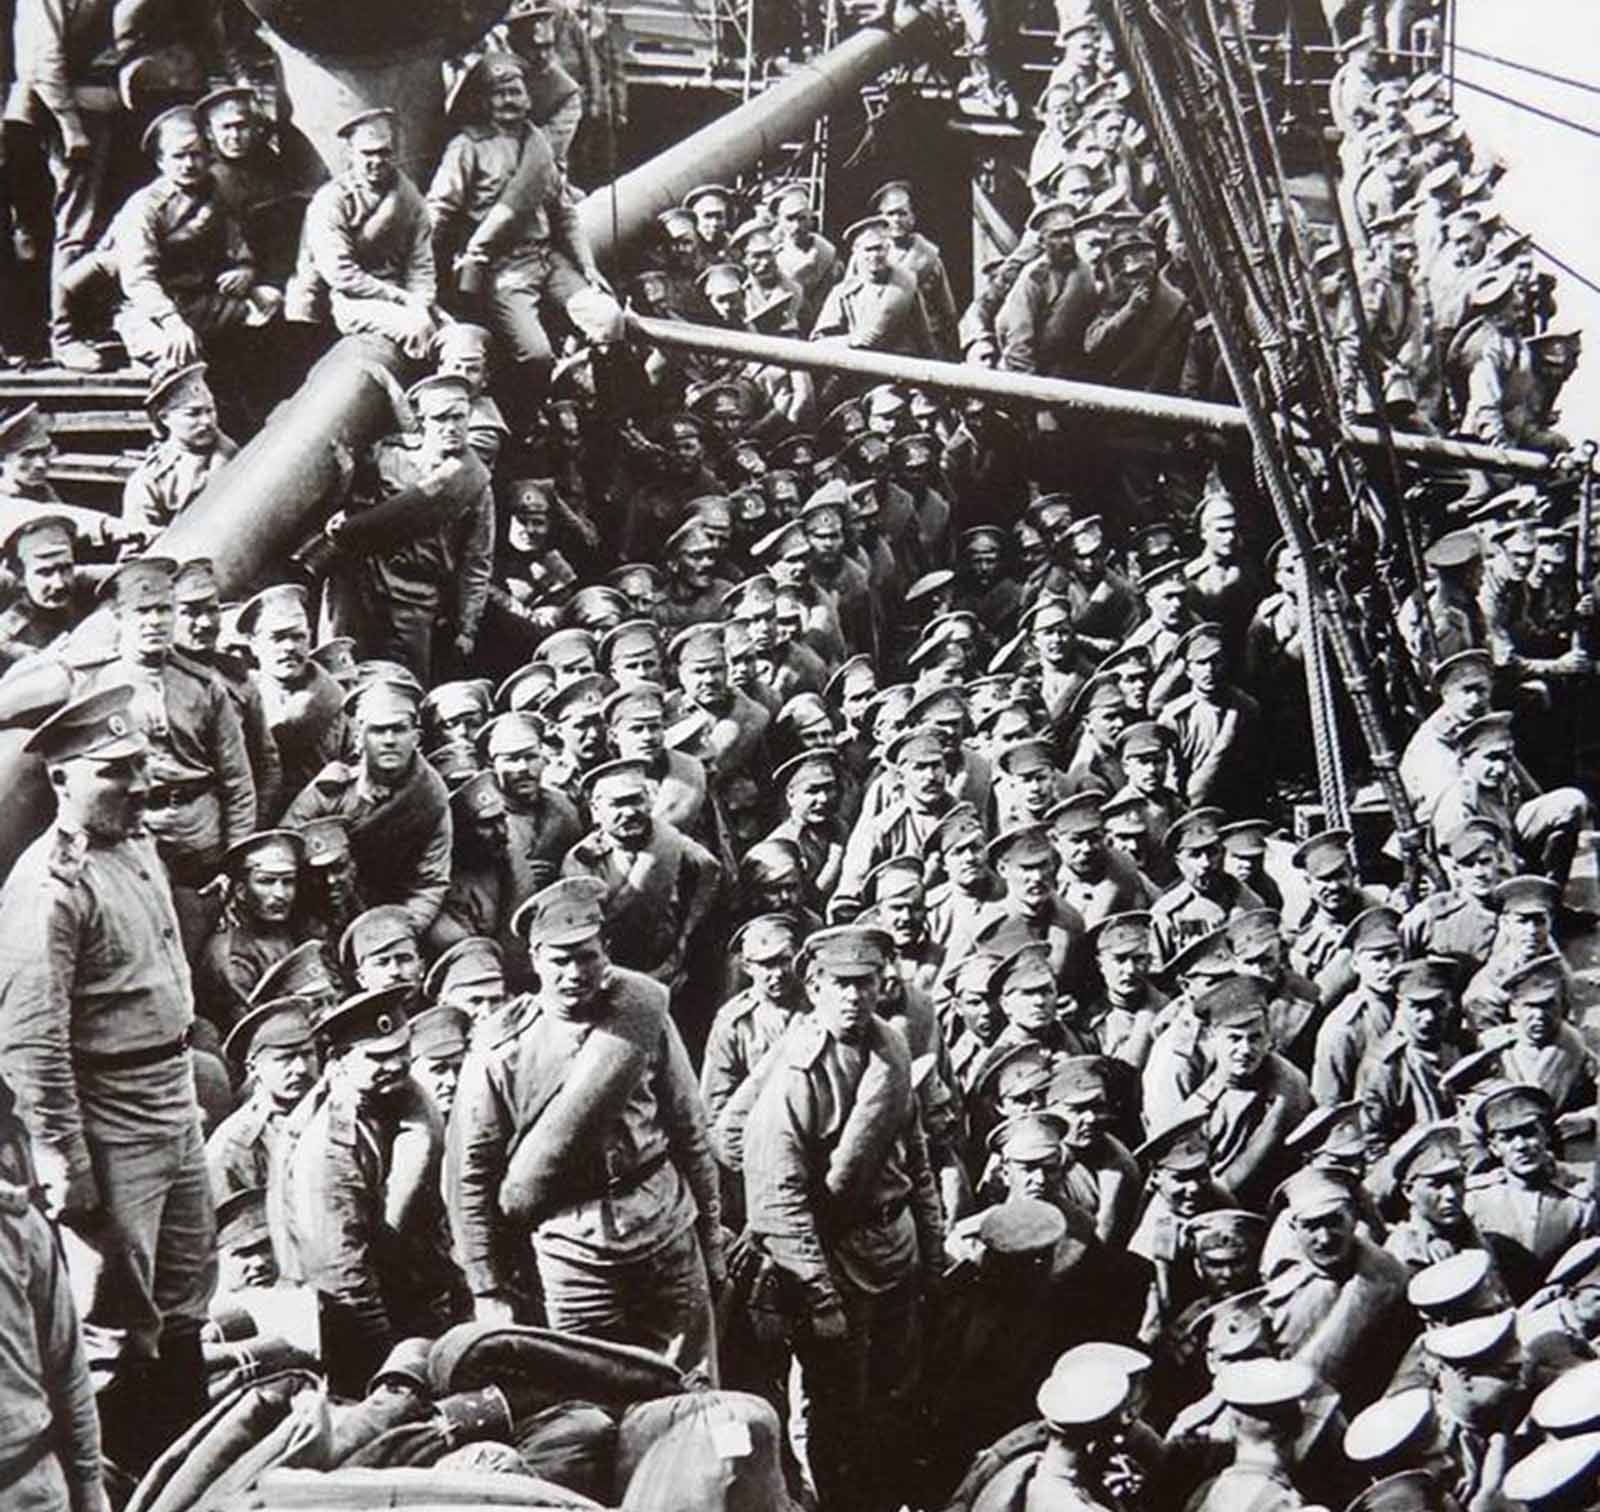 The Russian troops arriving in Marseille with the Himalaya steamship.